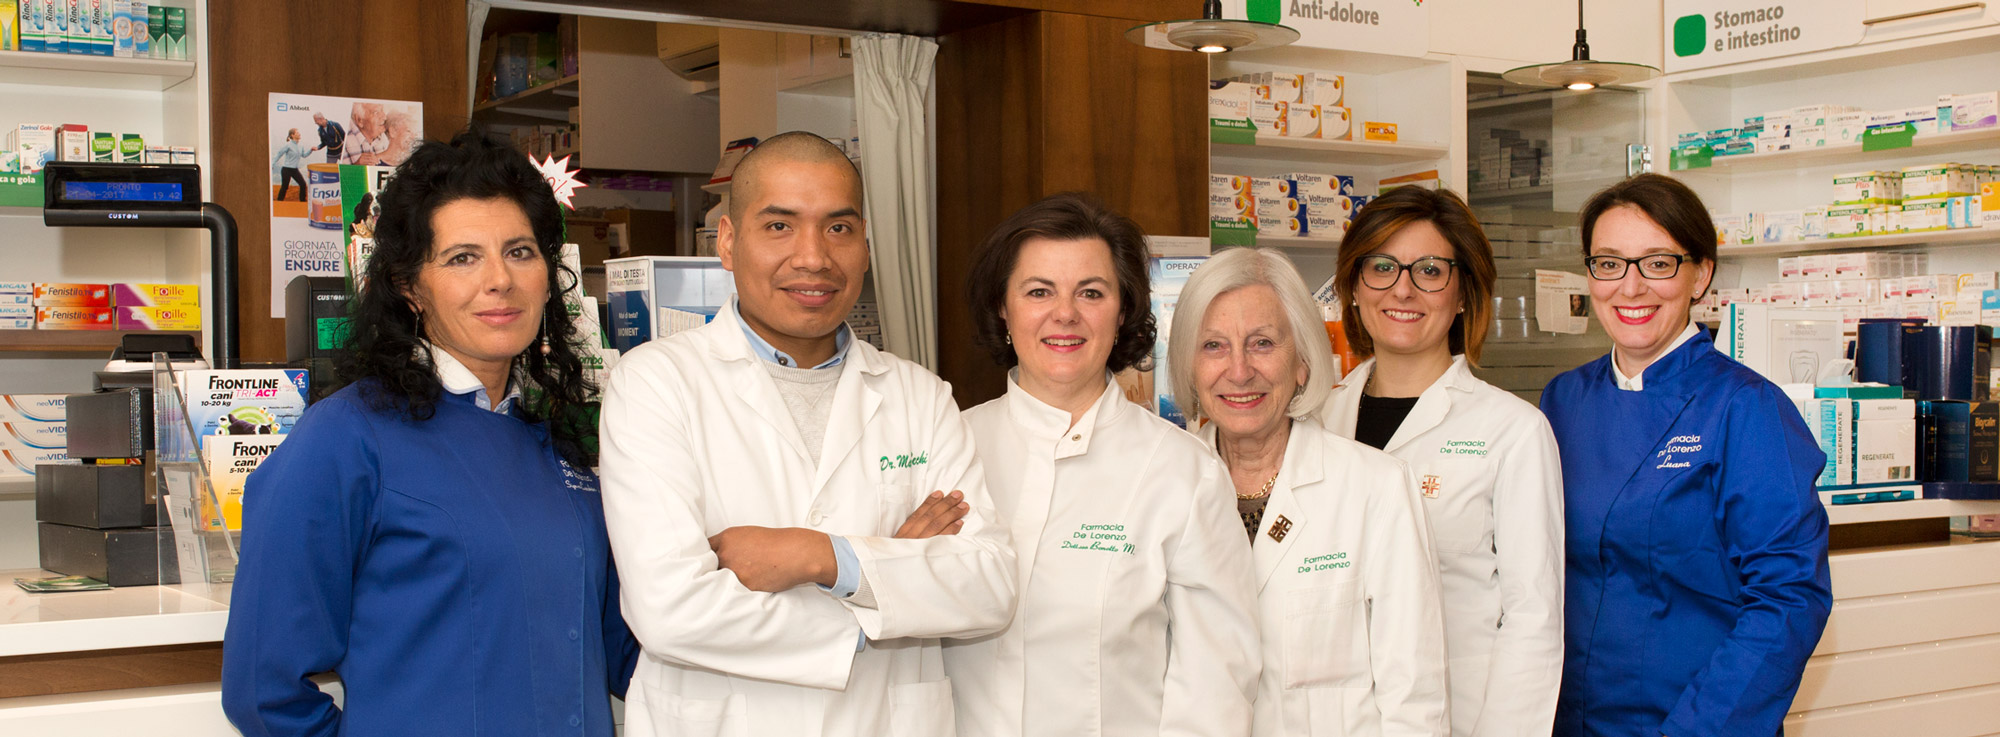 Team Farmacia De Lorenzo